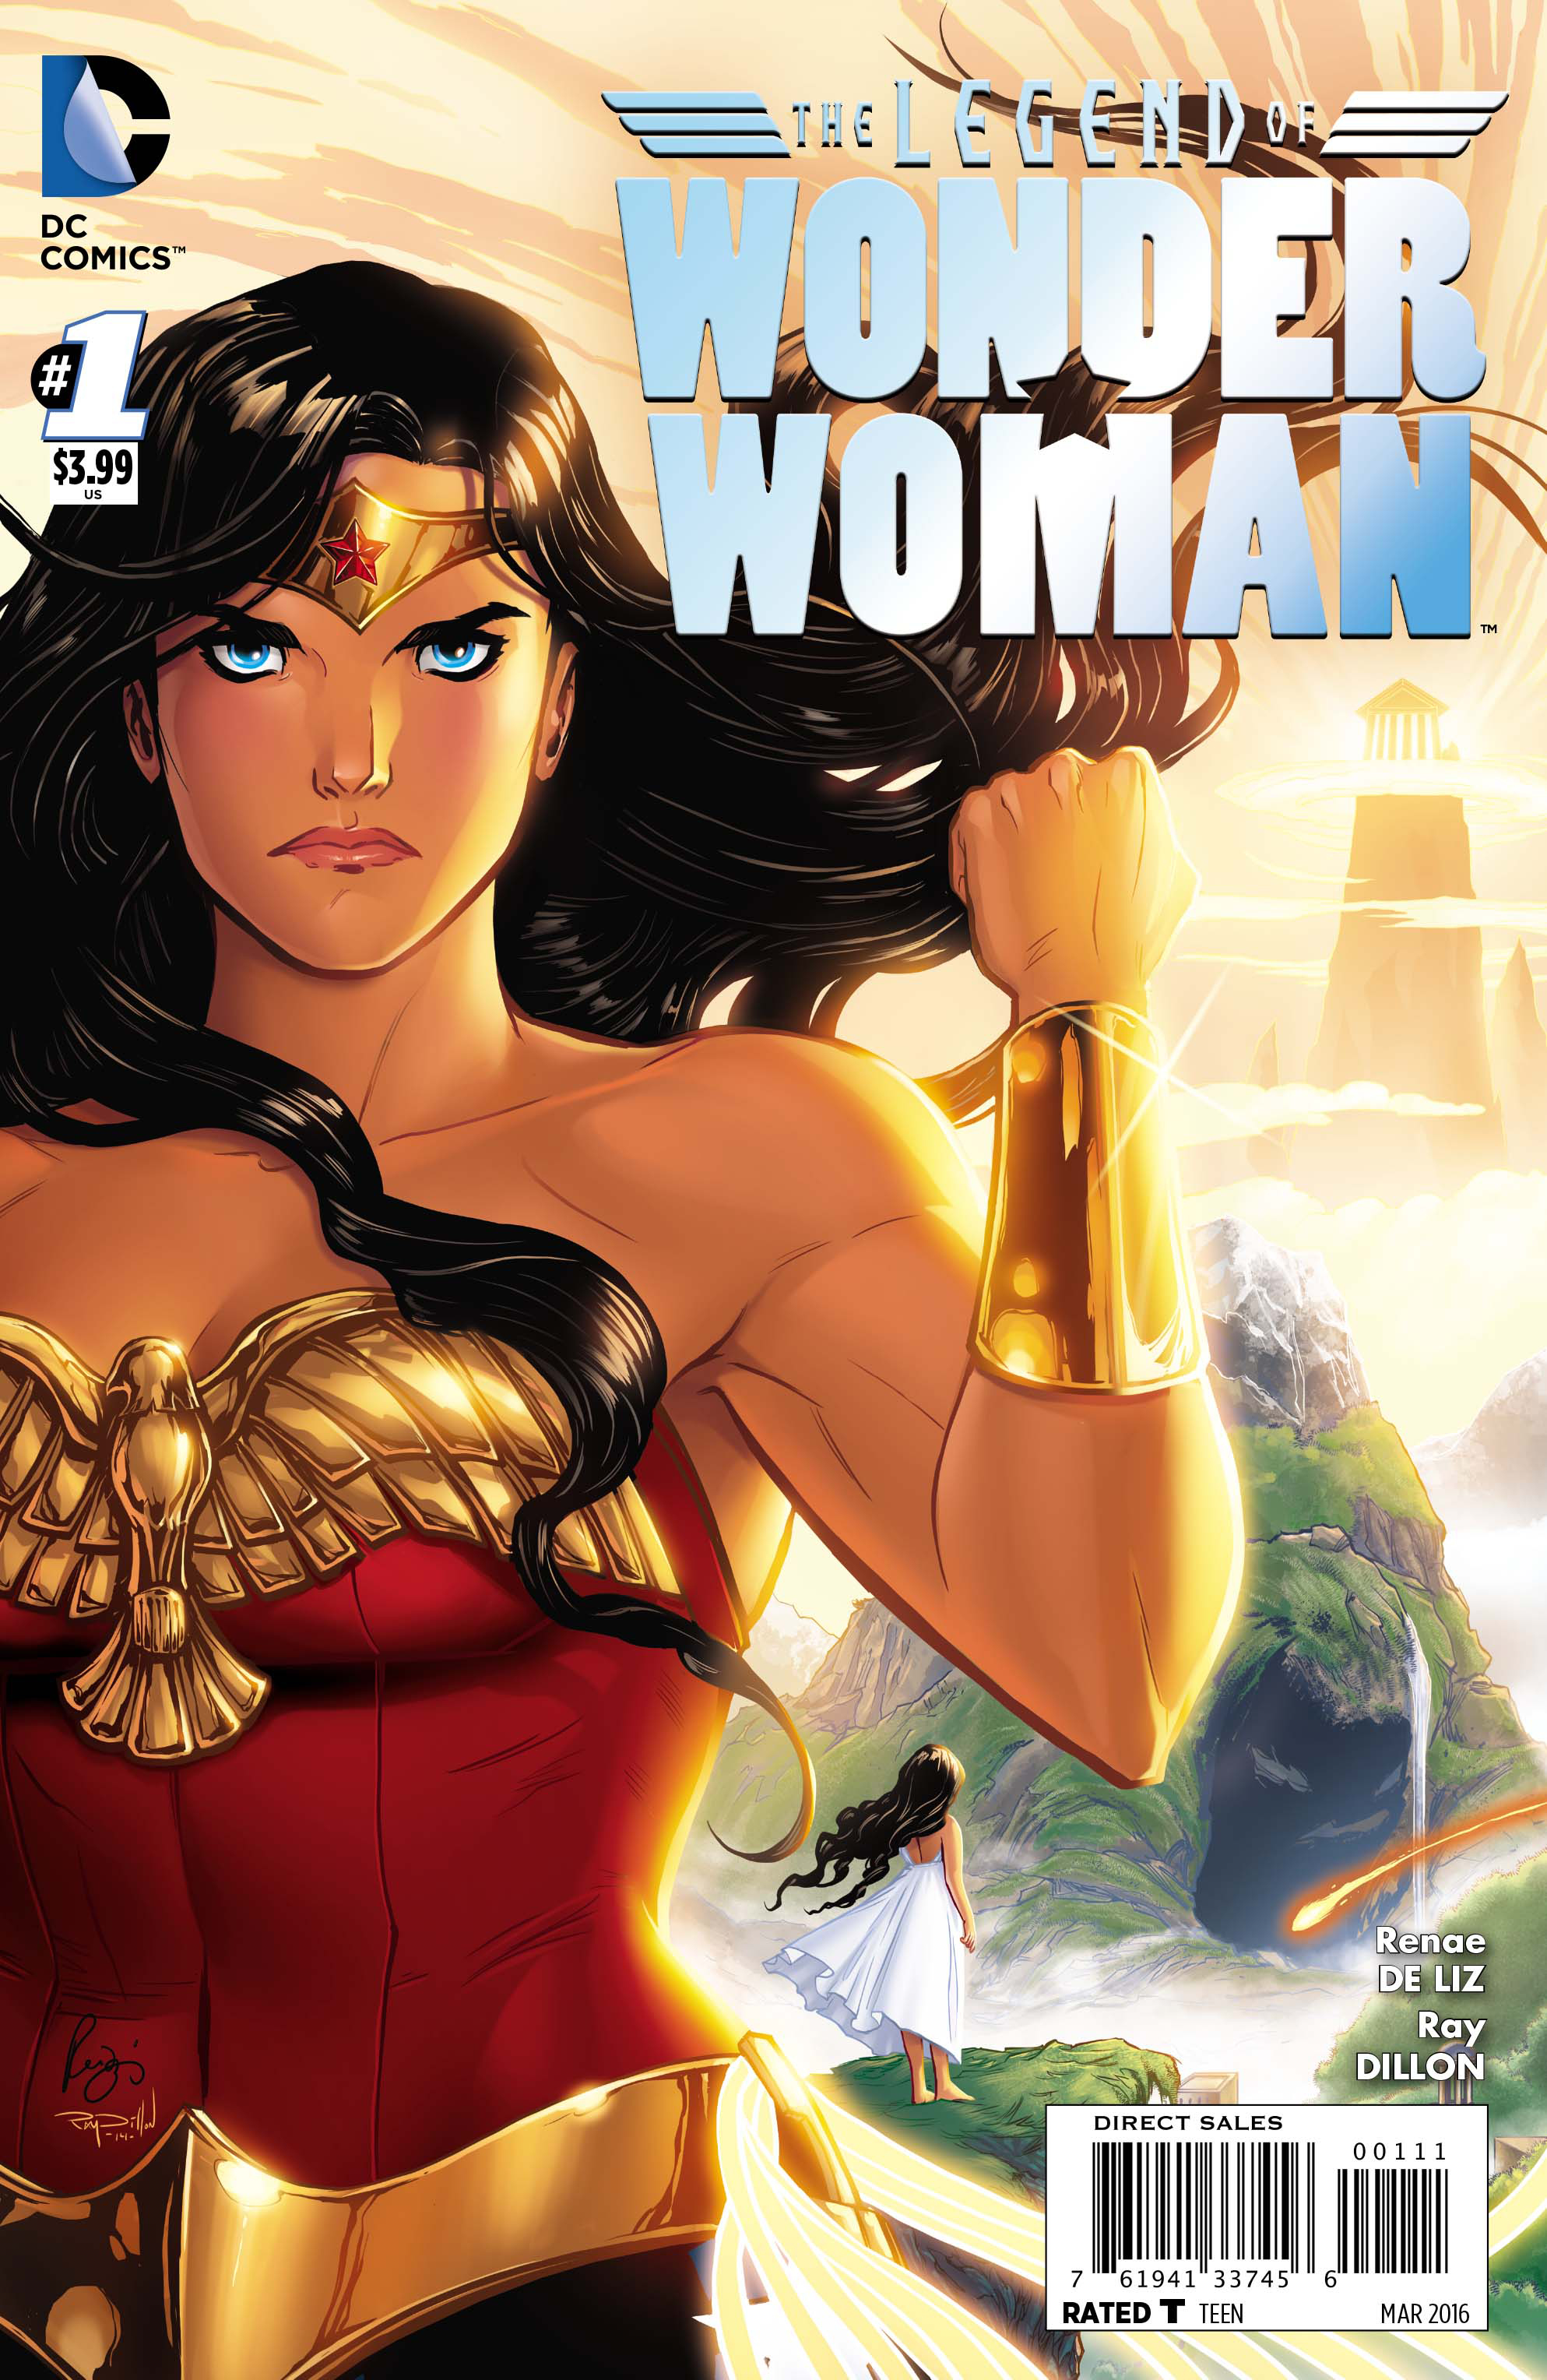 LEGEND OF WONDER WOMAN #1